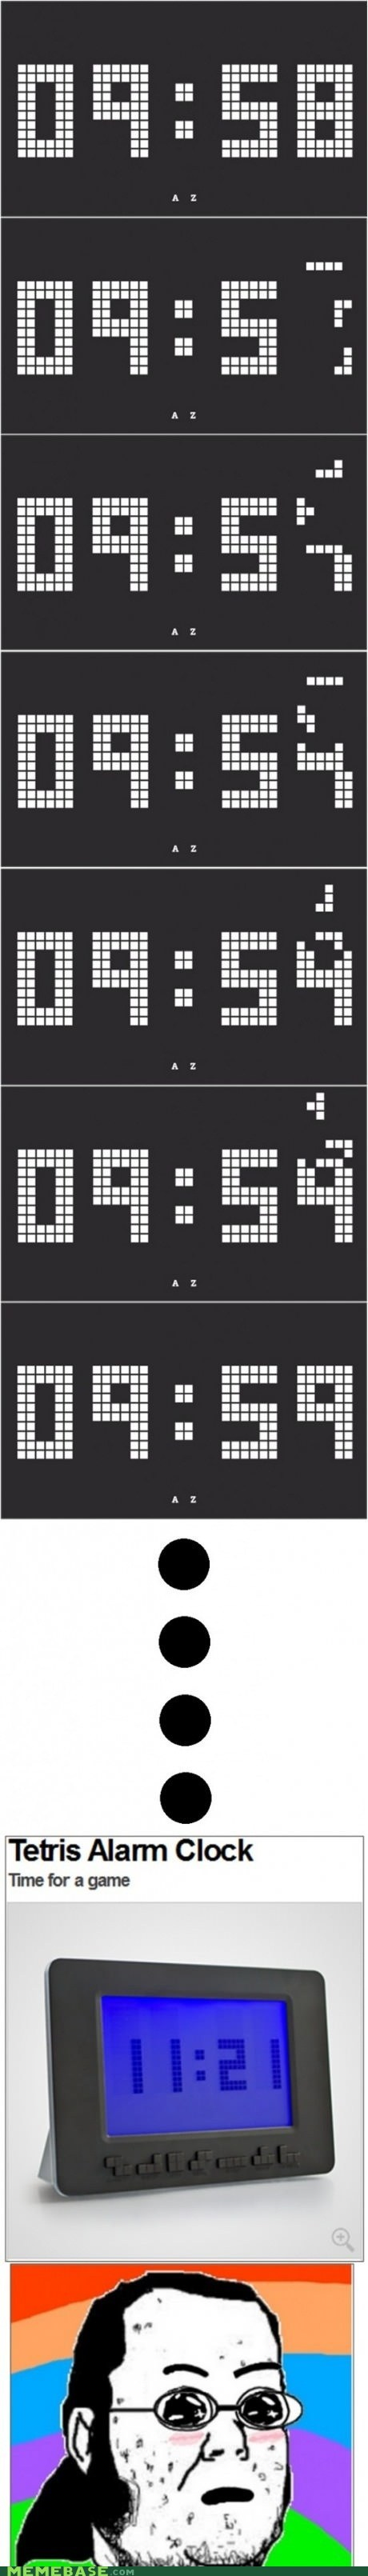 8 bit alarm clock tetris the internets want - 6526457600